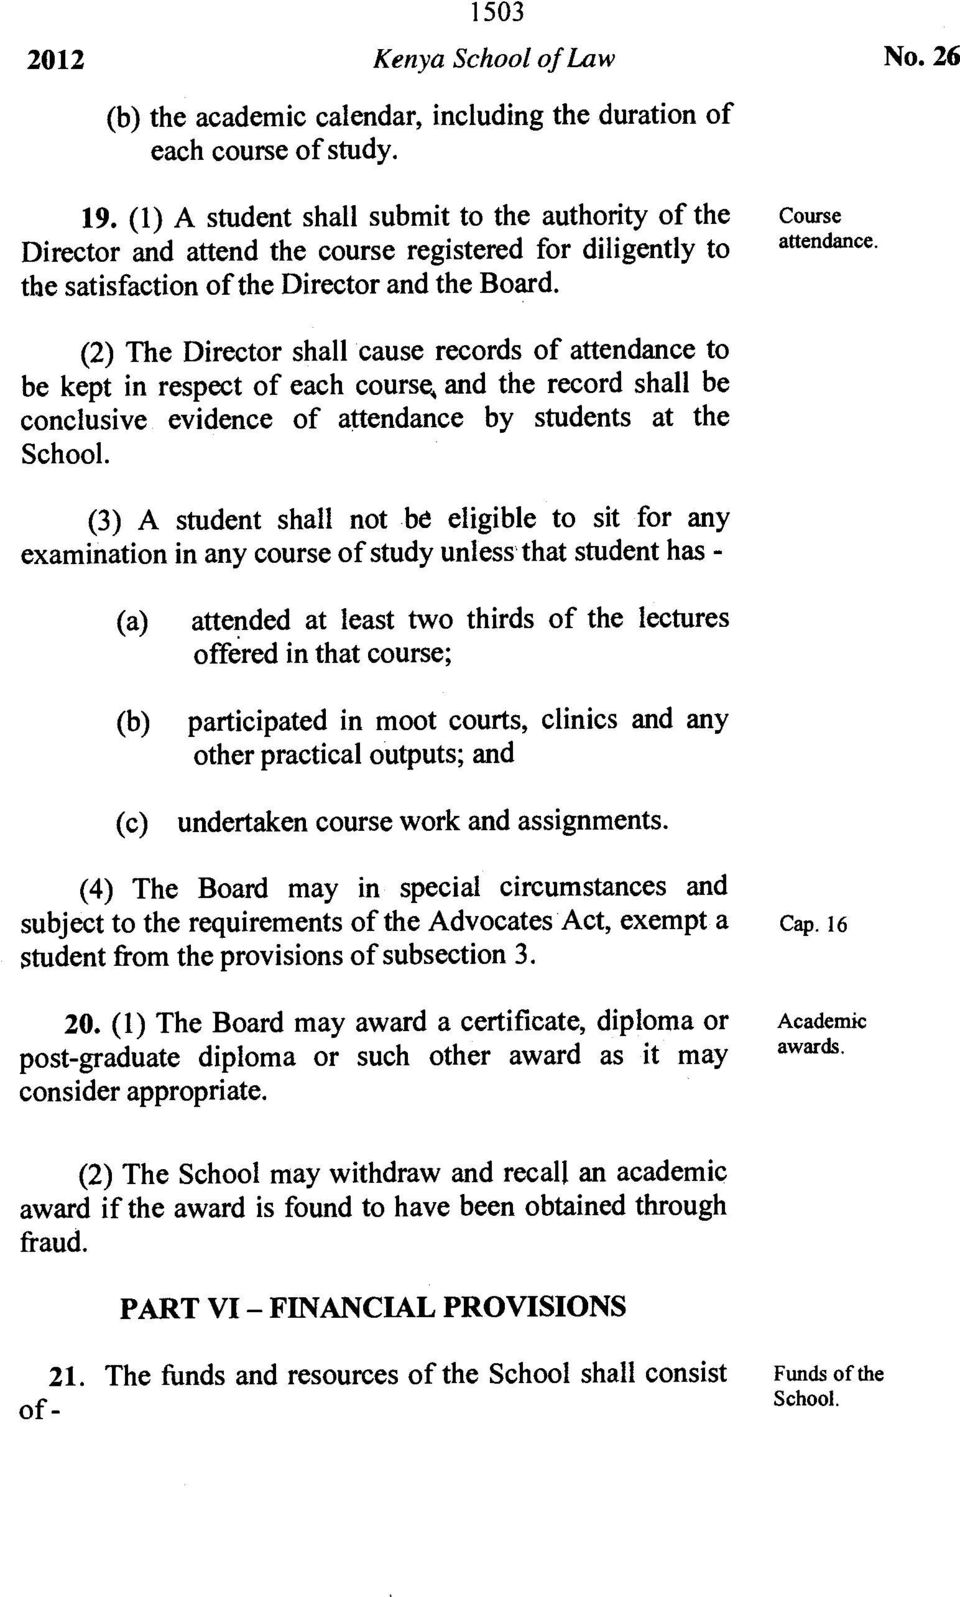 (2) The Director shall cause records of attendance to be kept in respect of each course, and the record shall be conclusive evidence of attendance by students at the School.